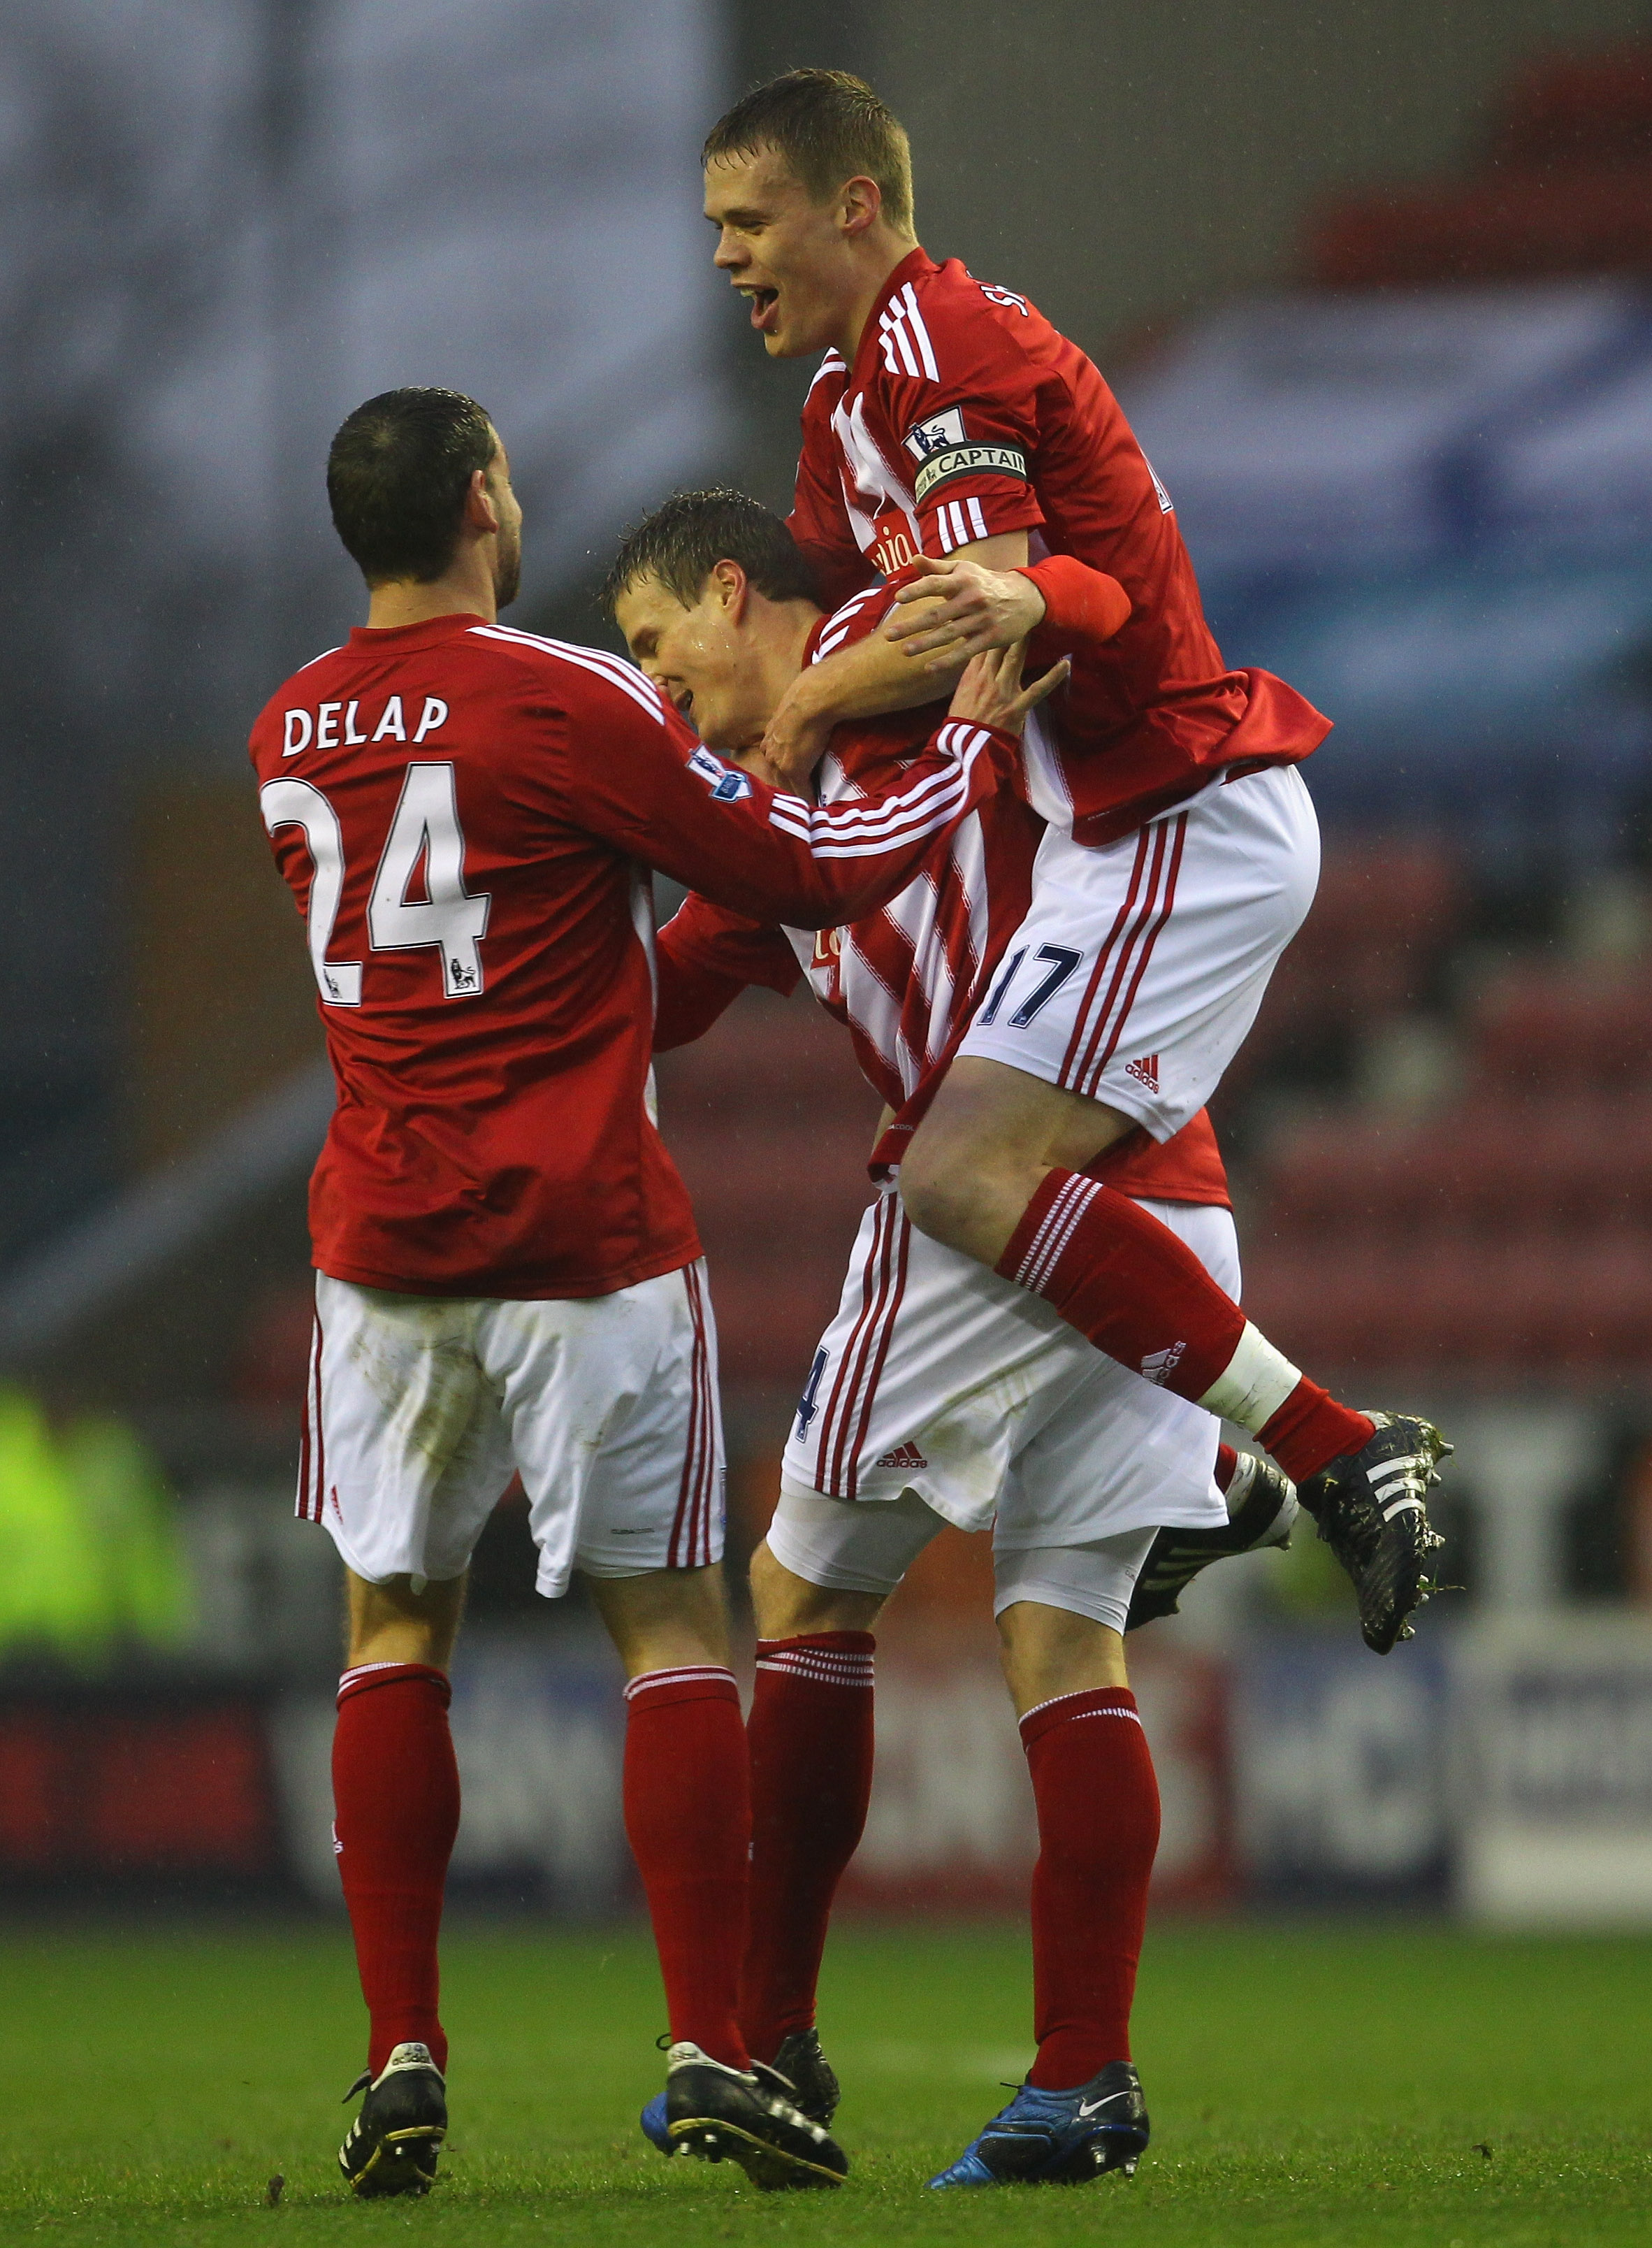 WIGAN, ENGLAND - DECEMBER 04:  Robert Huth of Stoke City is congratulated by Ryan Shawcross and Rory Delap after scoring the opening goal during the Barclays Premier League match between Wigan Athletic and Stoke City at DW Stadium on December 4, 2010 in W